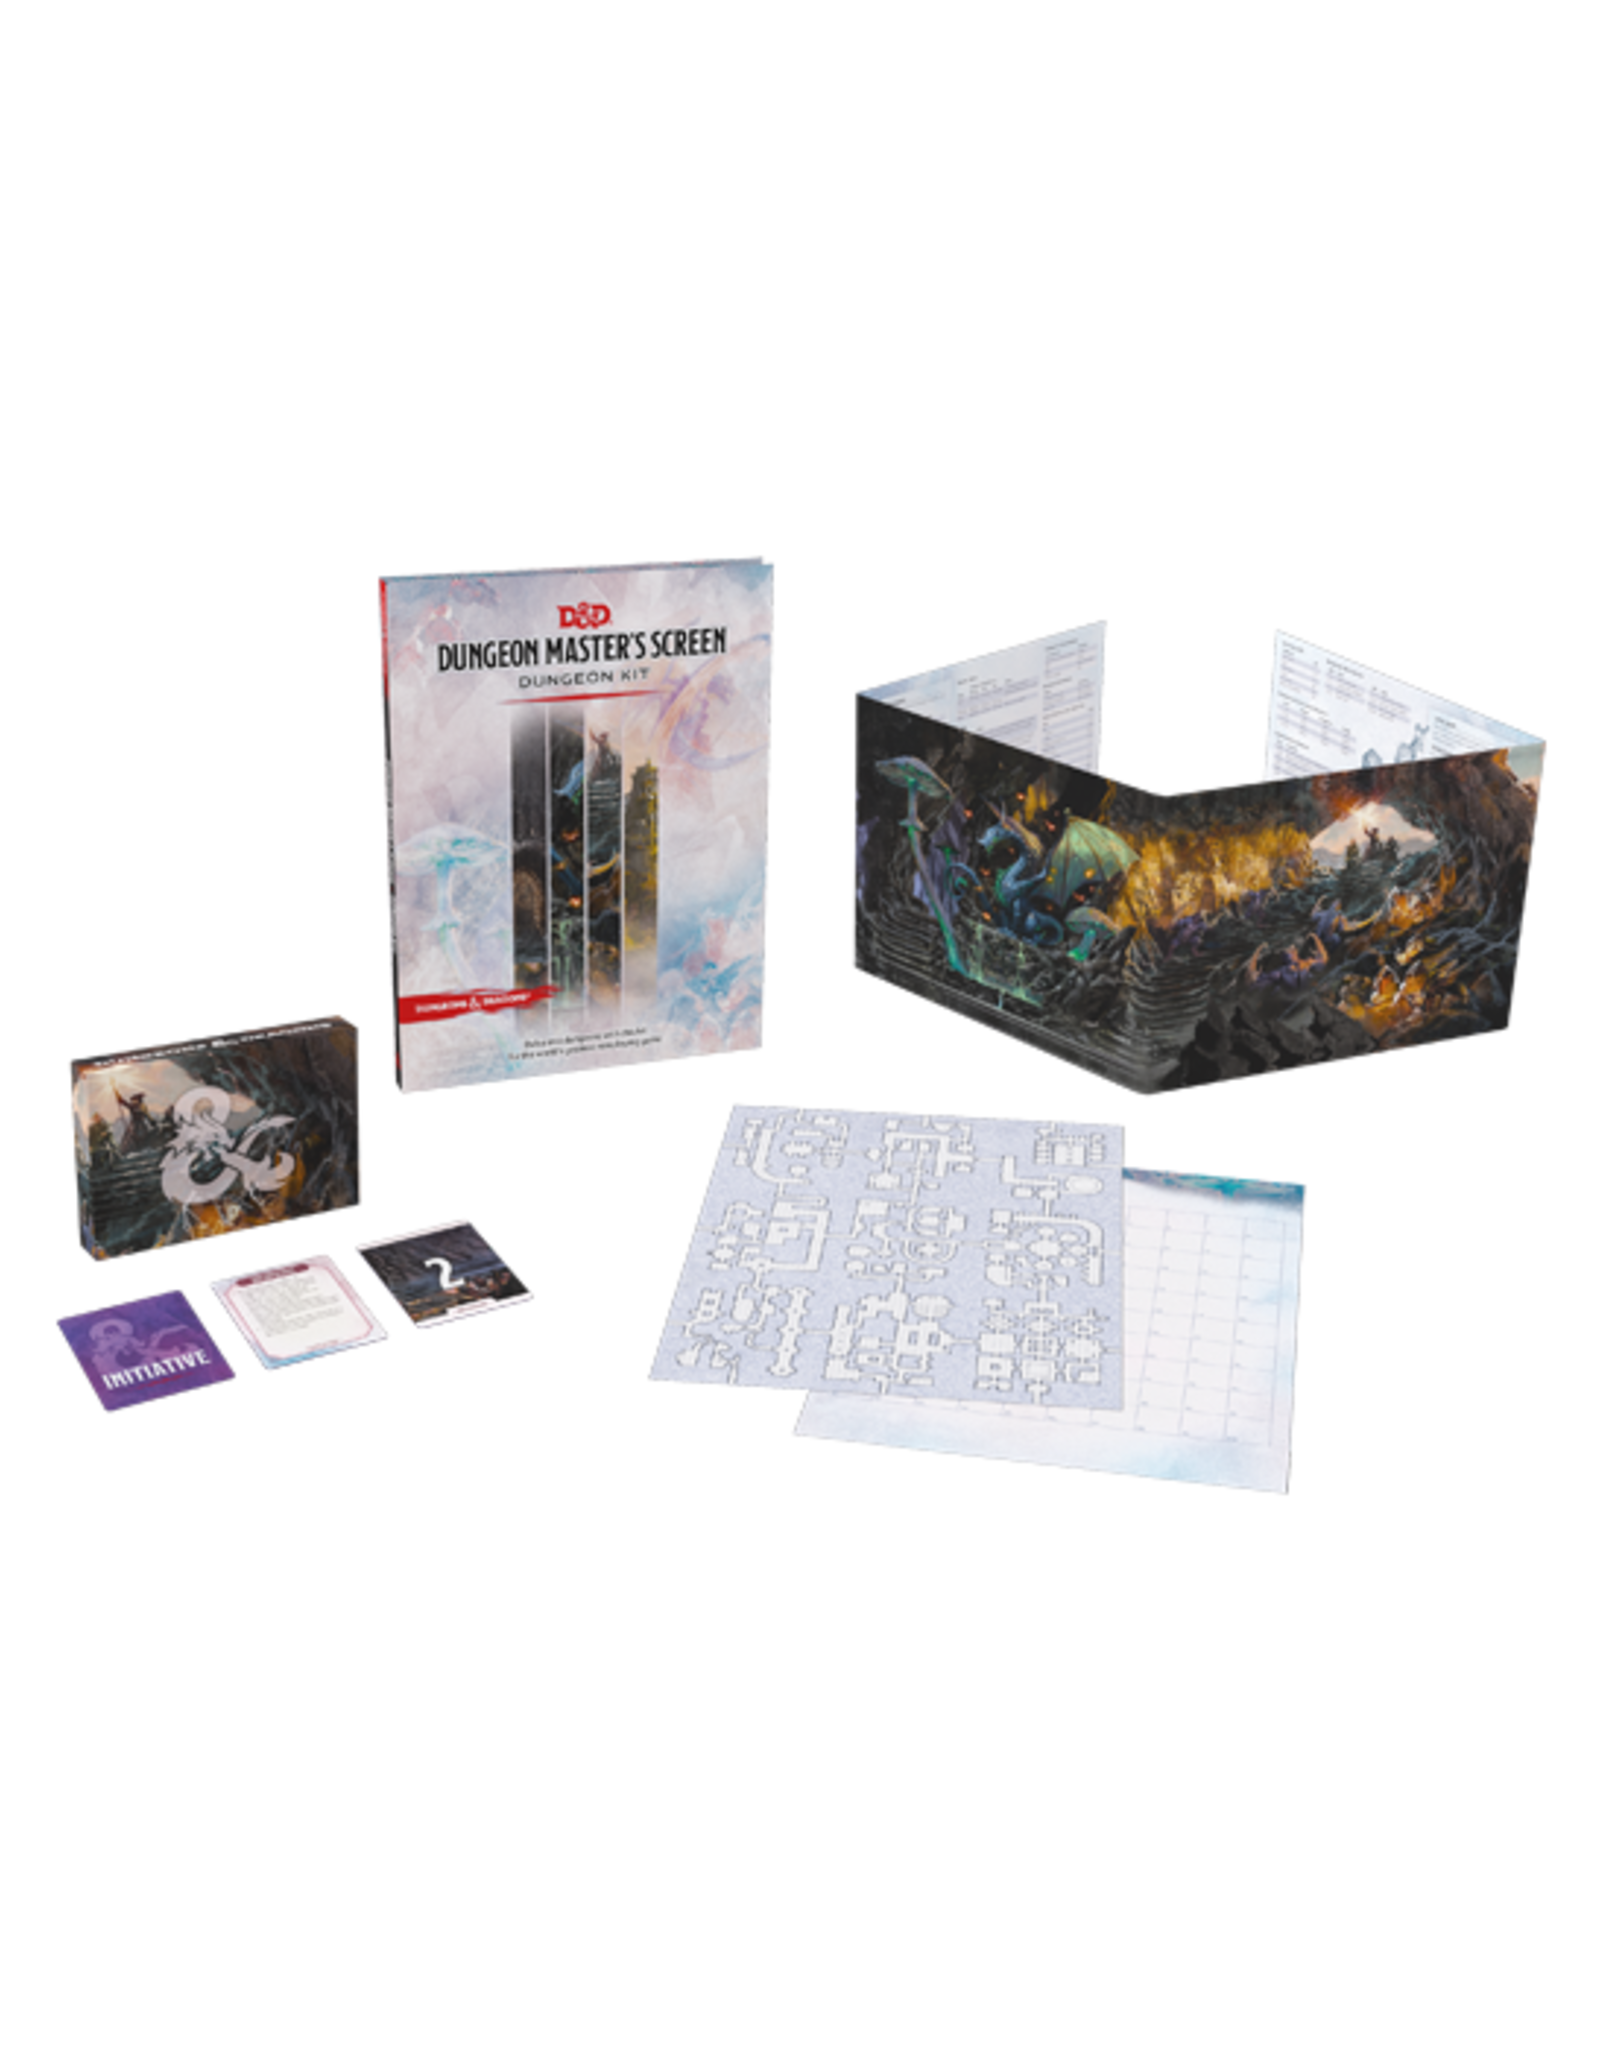 Dungeons & Dragons Dungeons & Dragons: 5th Edition - Dungeon Master's Screen - Dungeon Kit